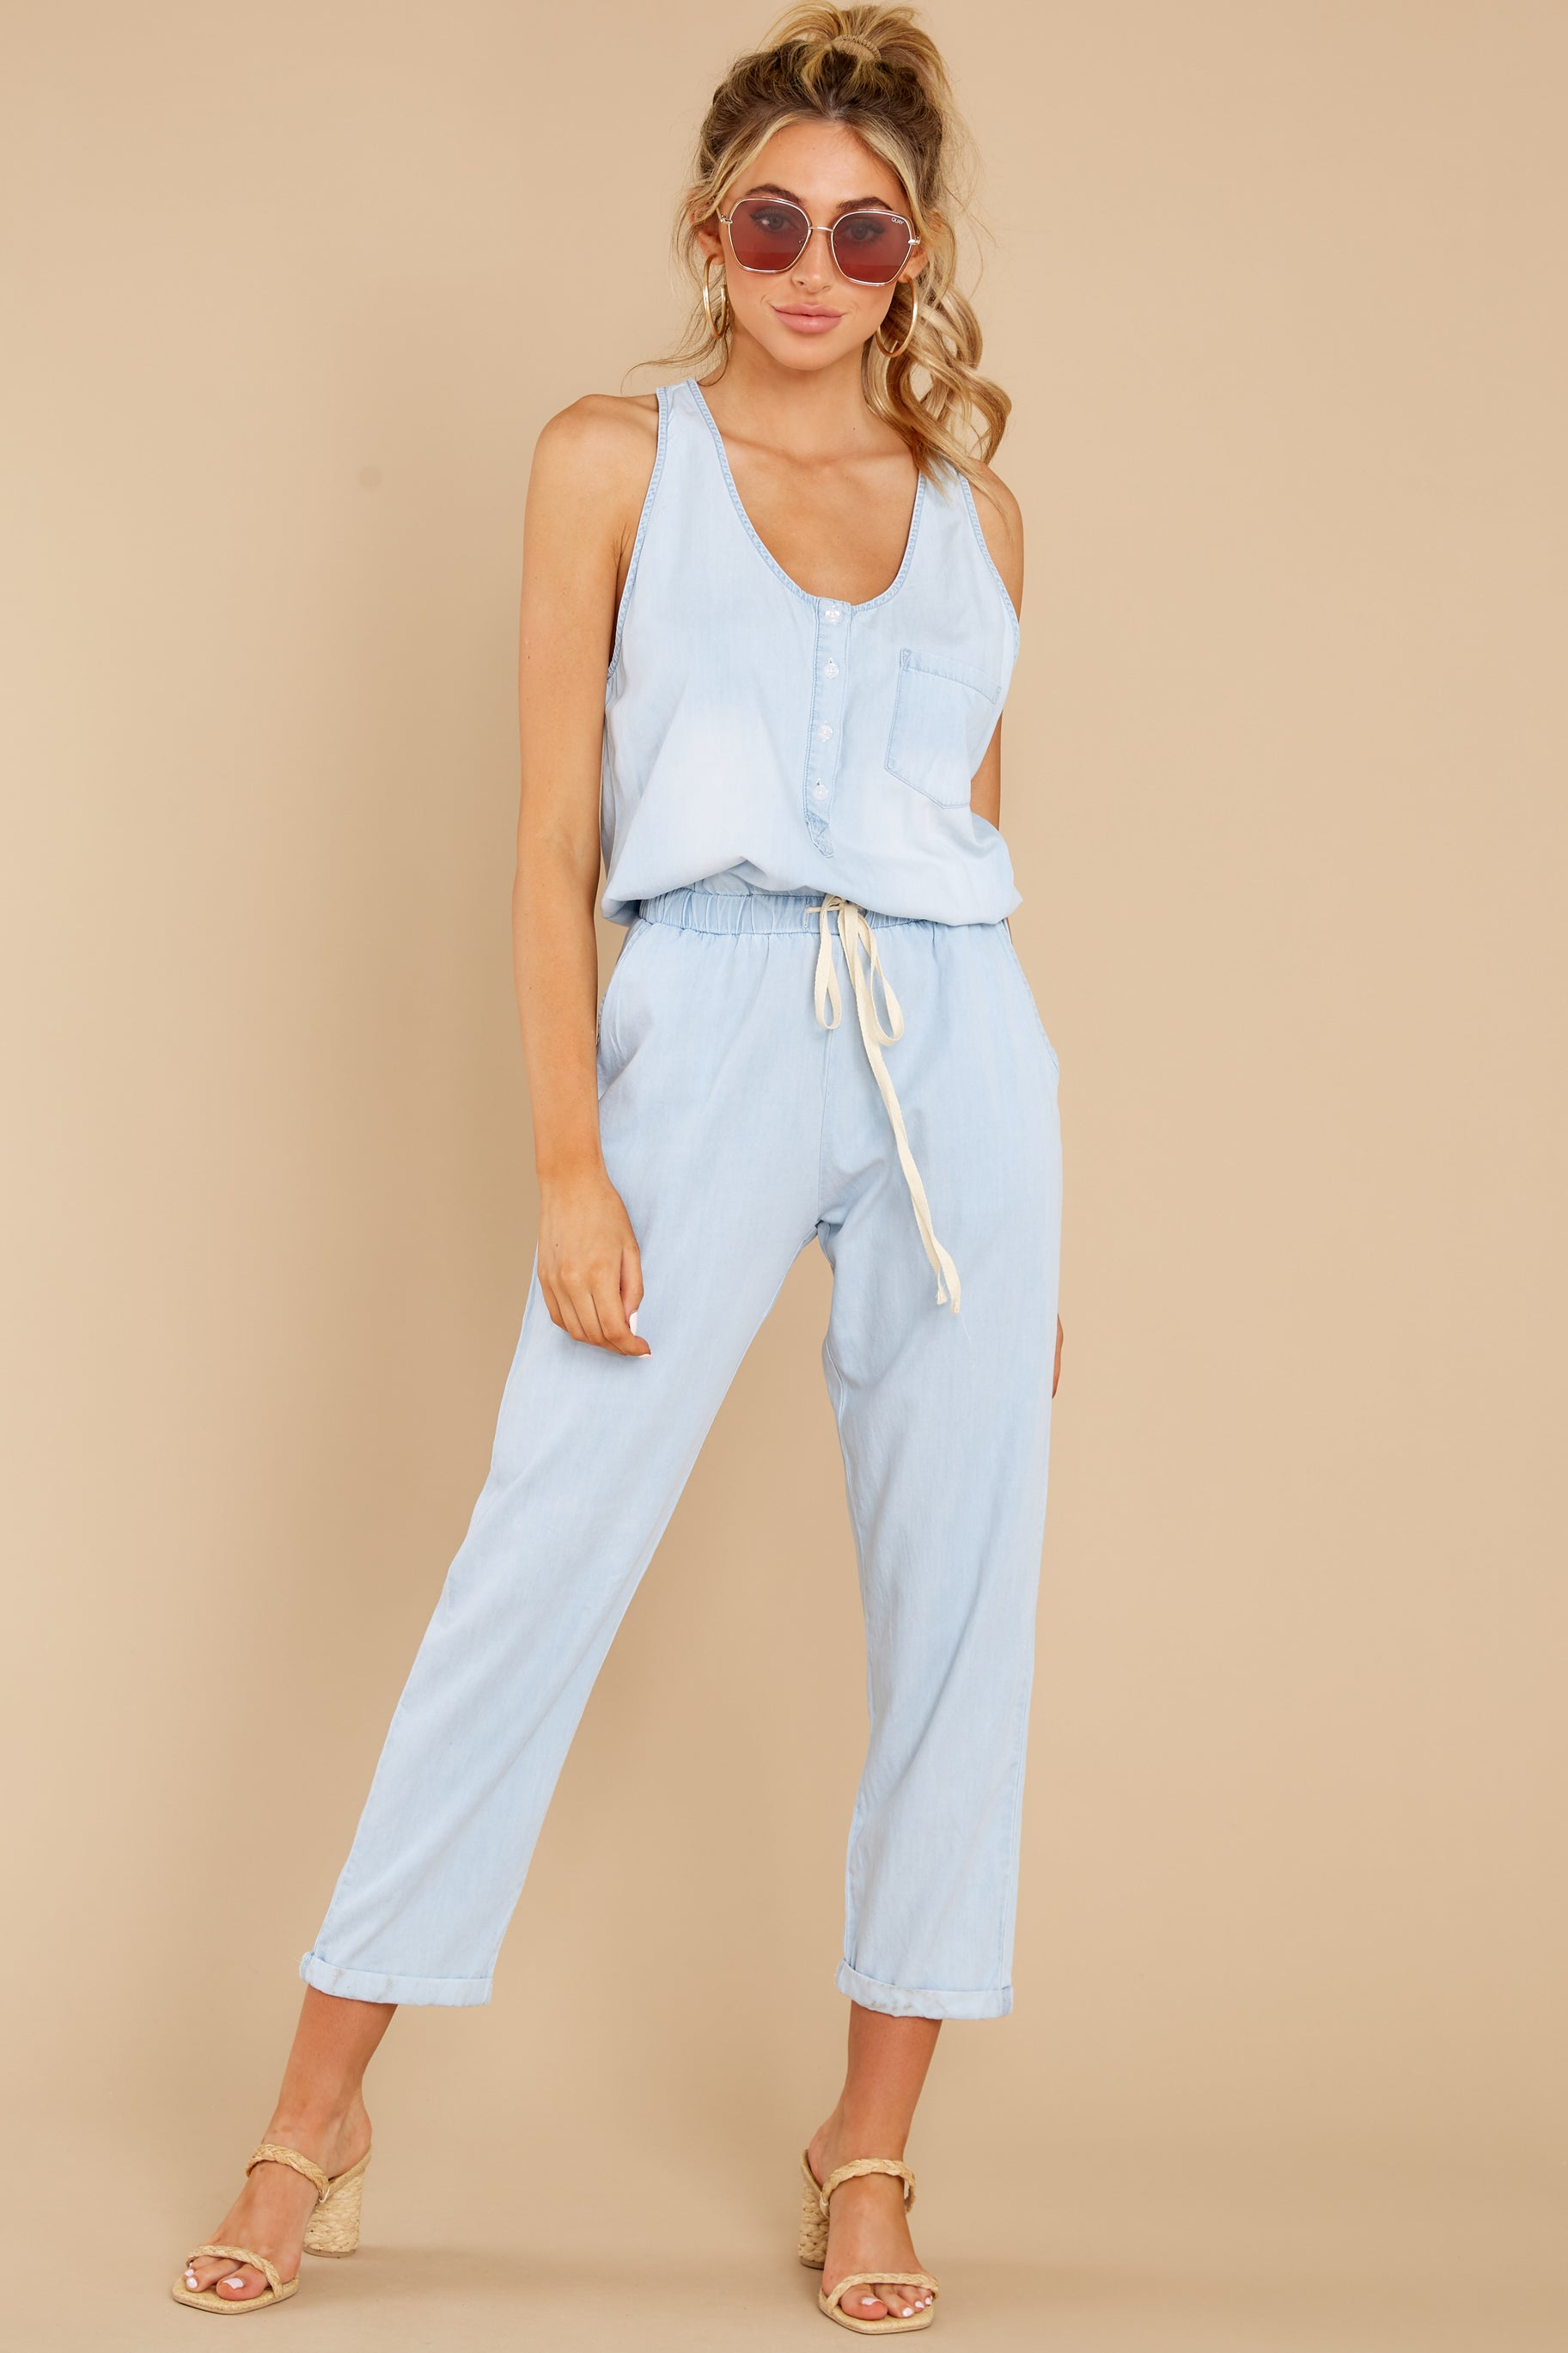 3 Play It Back Light Wash Chambray Jumpsuit at reddress.com